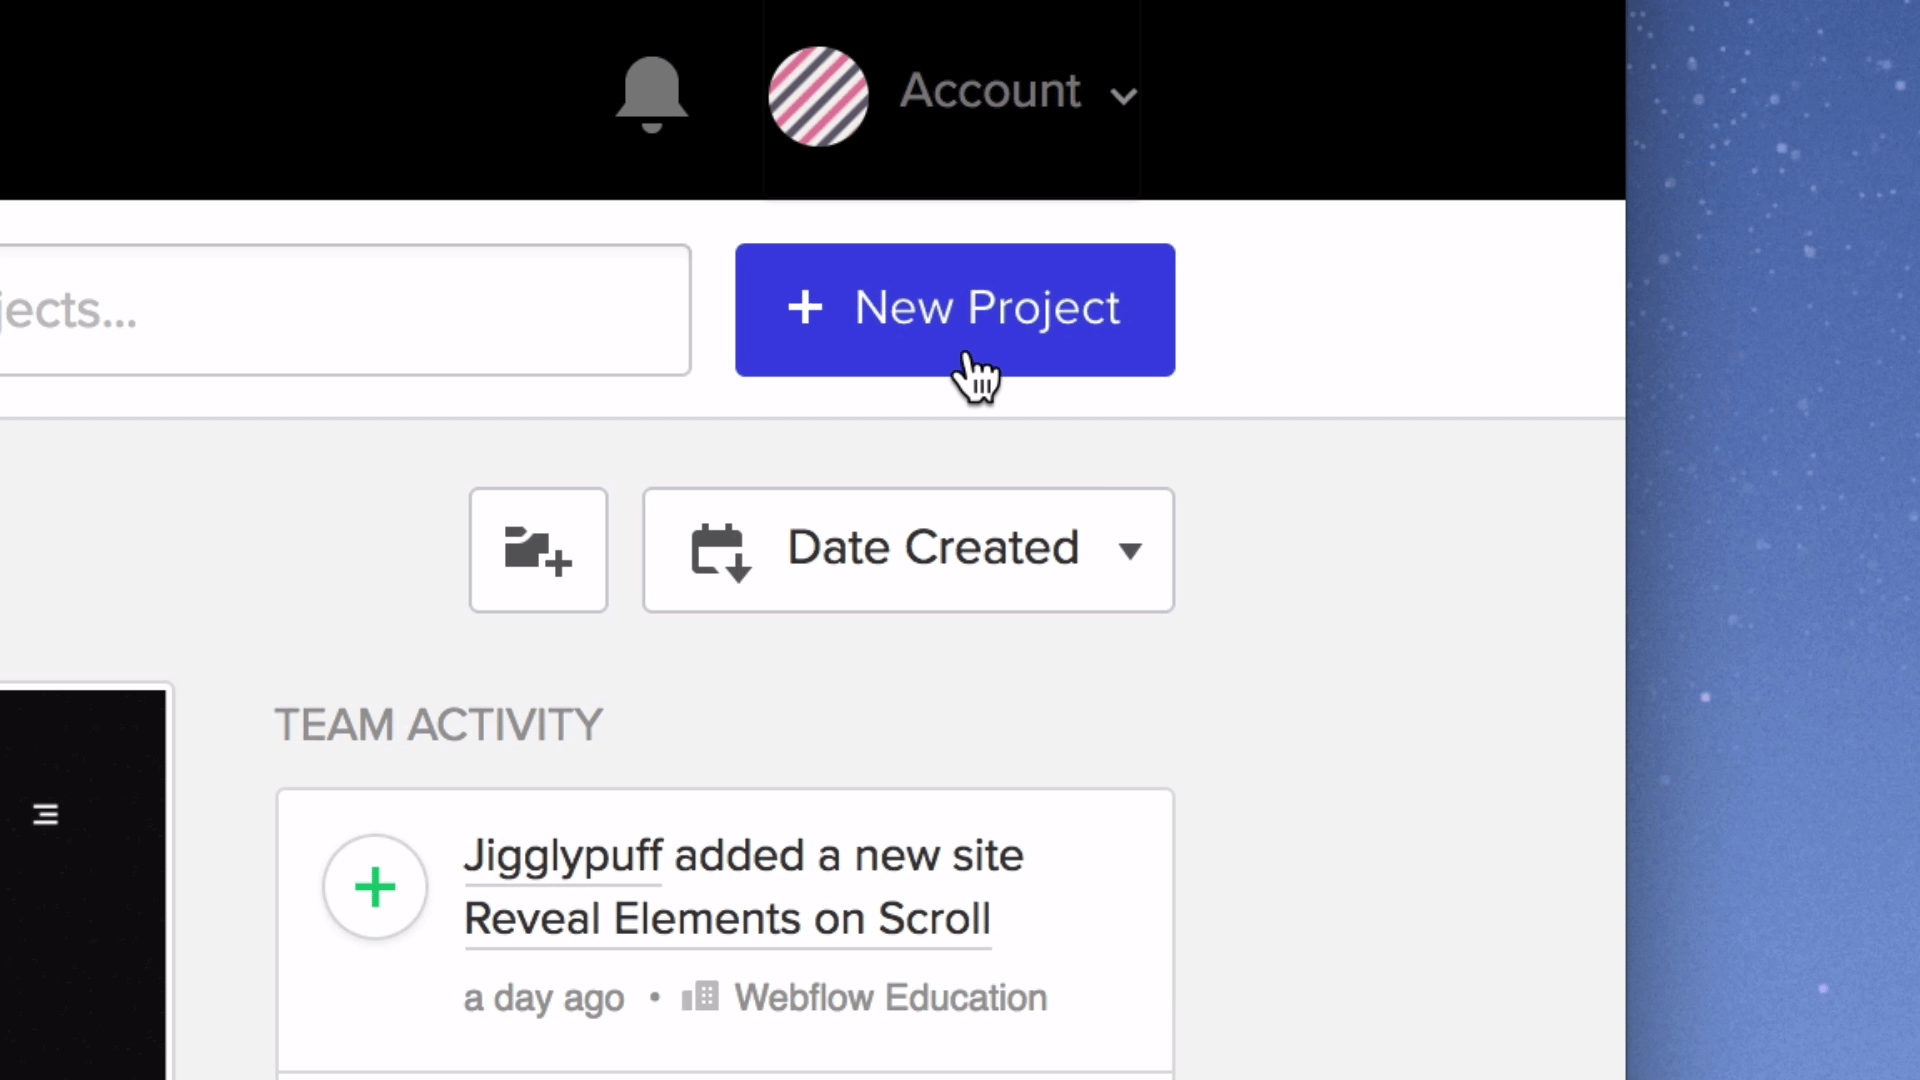 Create a new project by clicking on the blue button at the top right corner of the dashboard.